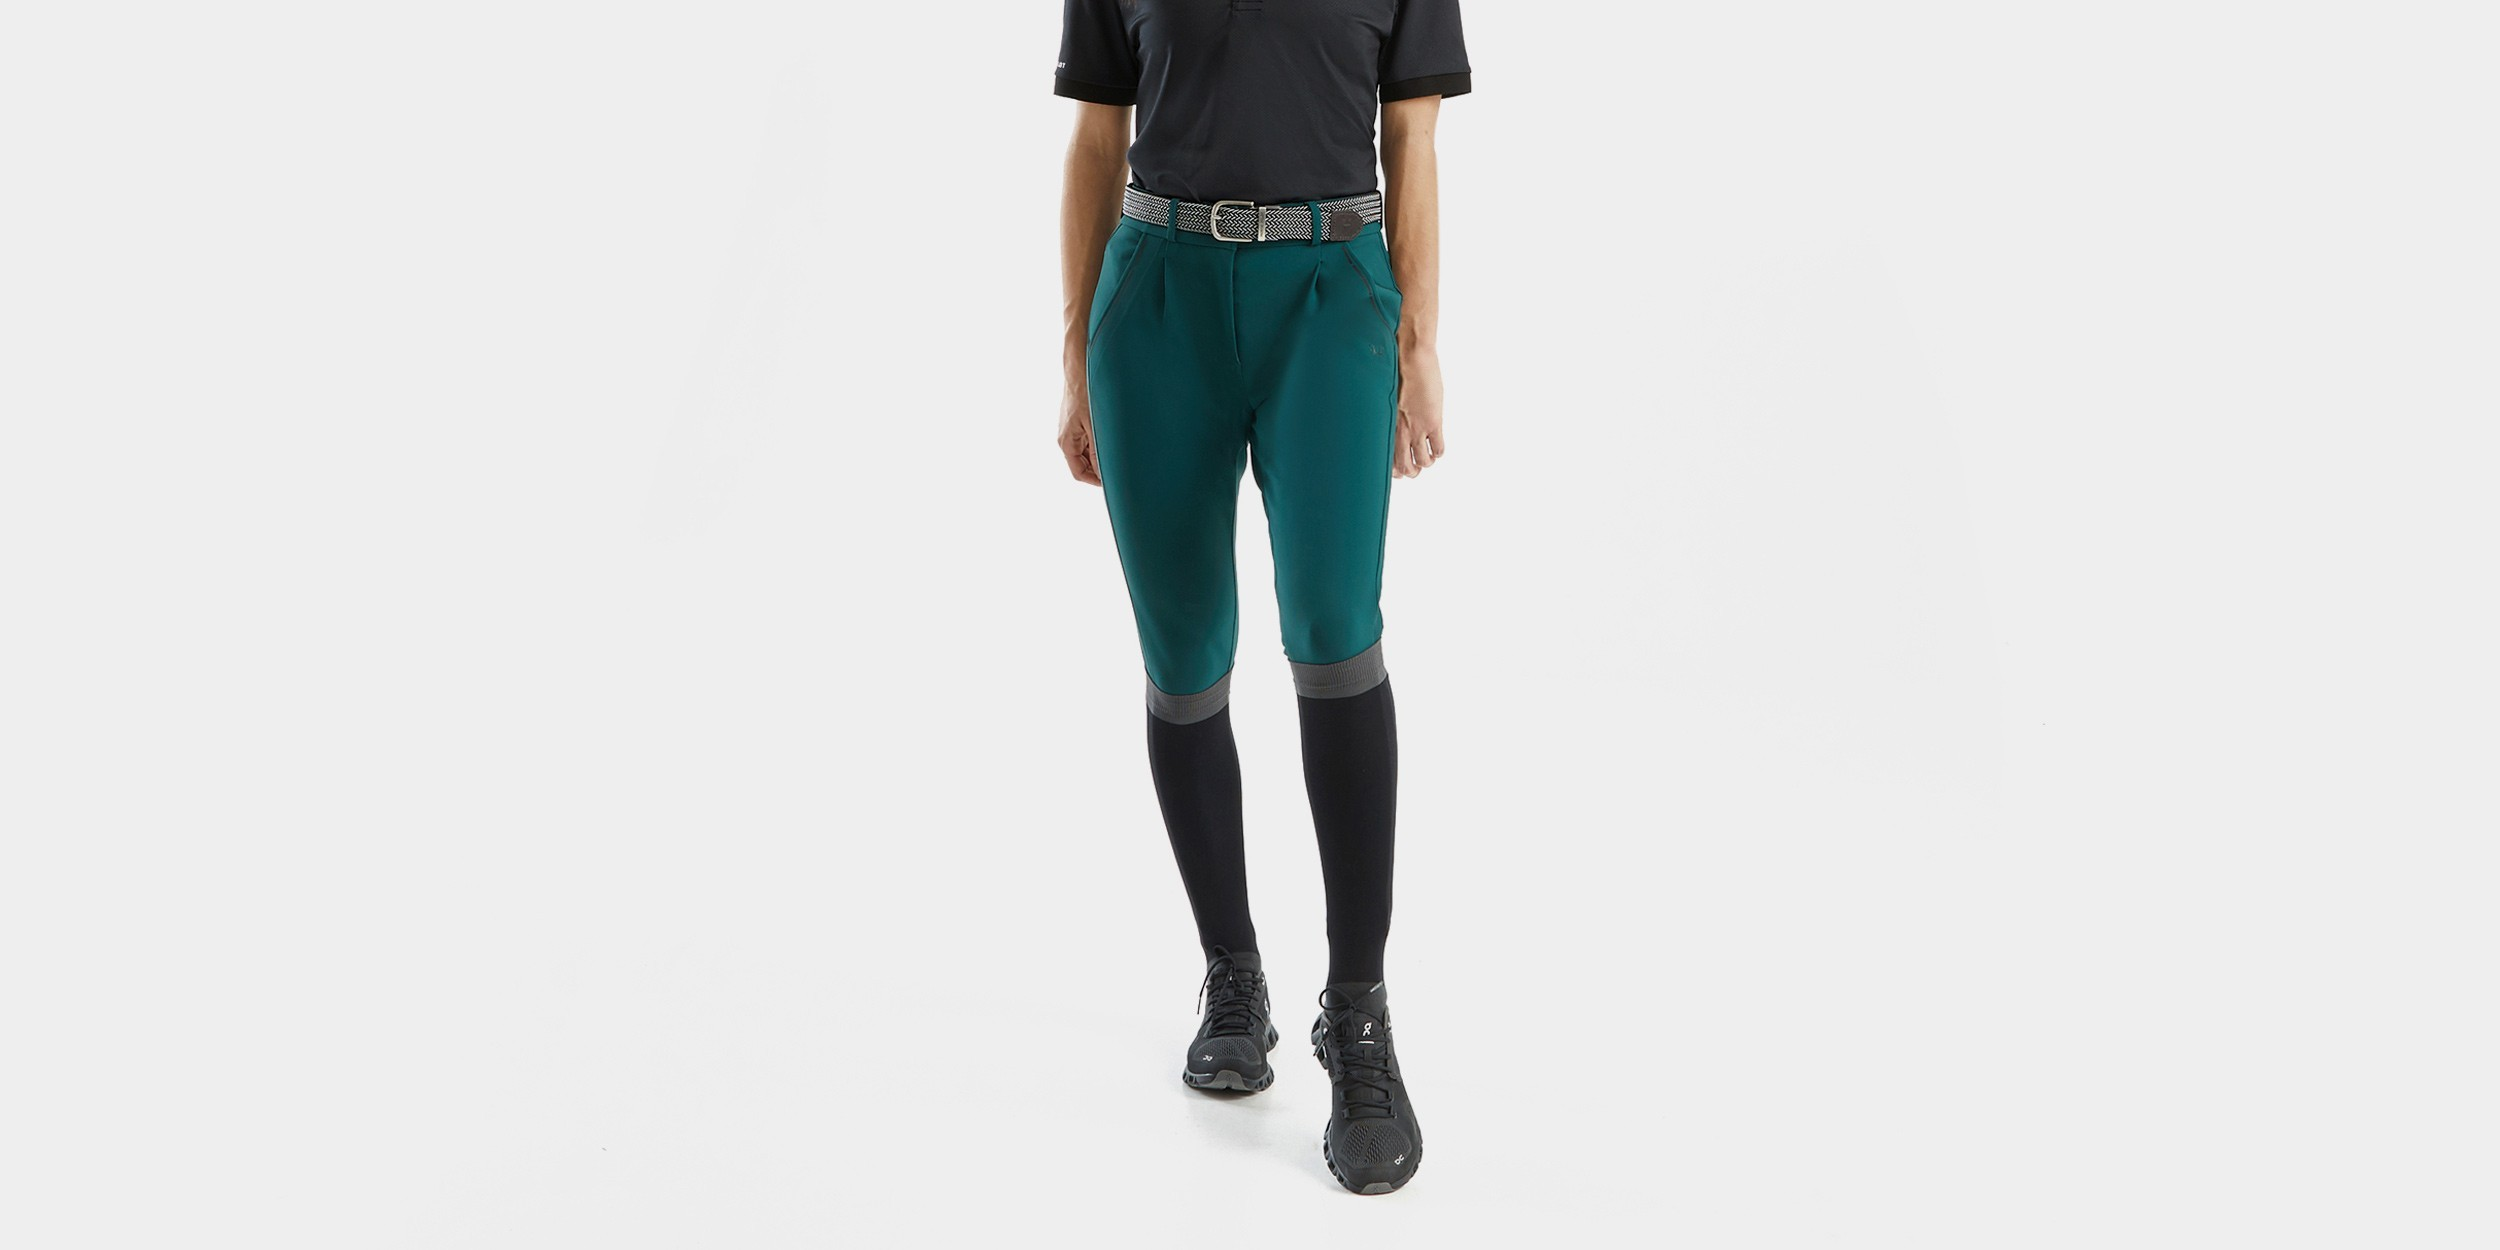 X-TAILOR - Women's riding pleated trousers